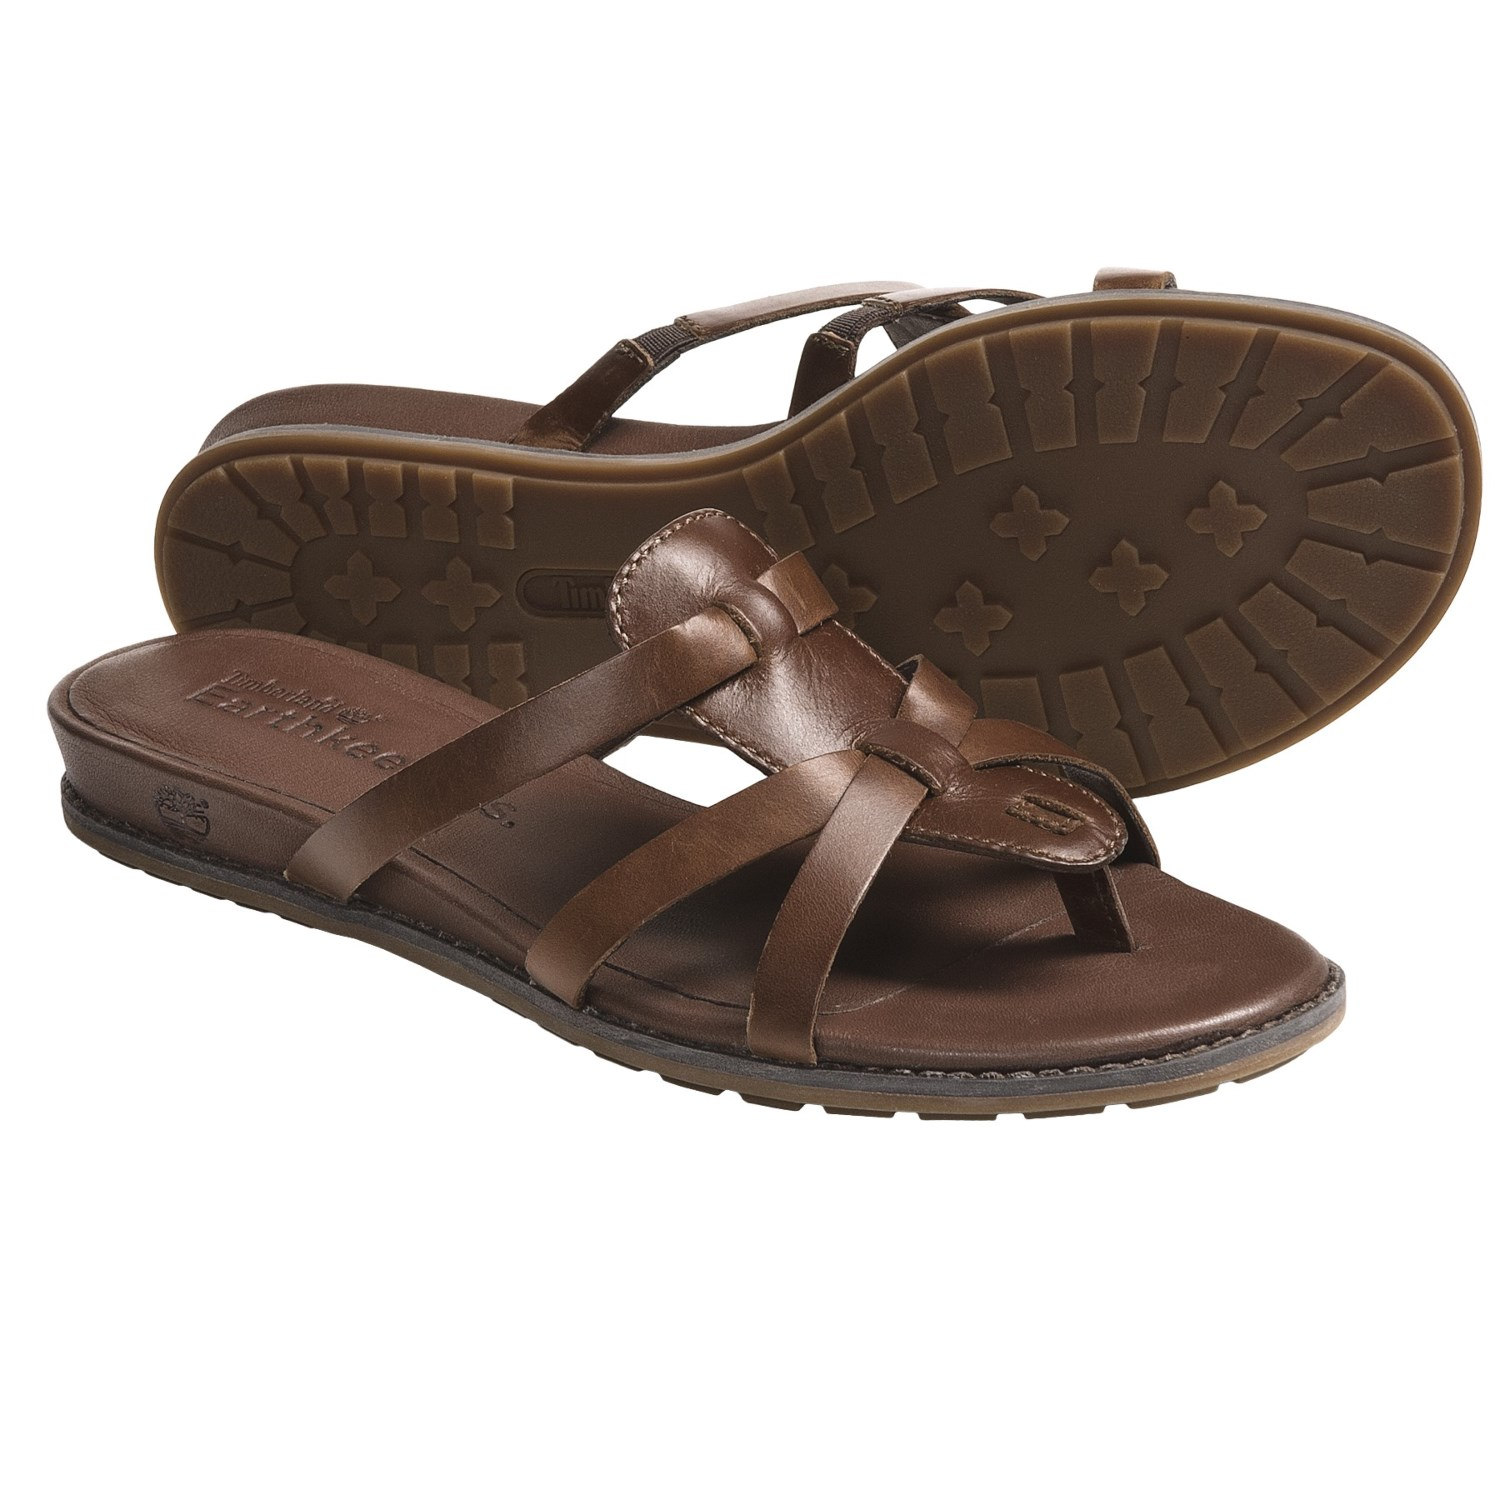 Creative Timberland Womens Earthkeepers Danforth Mule Sandals